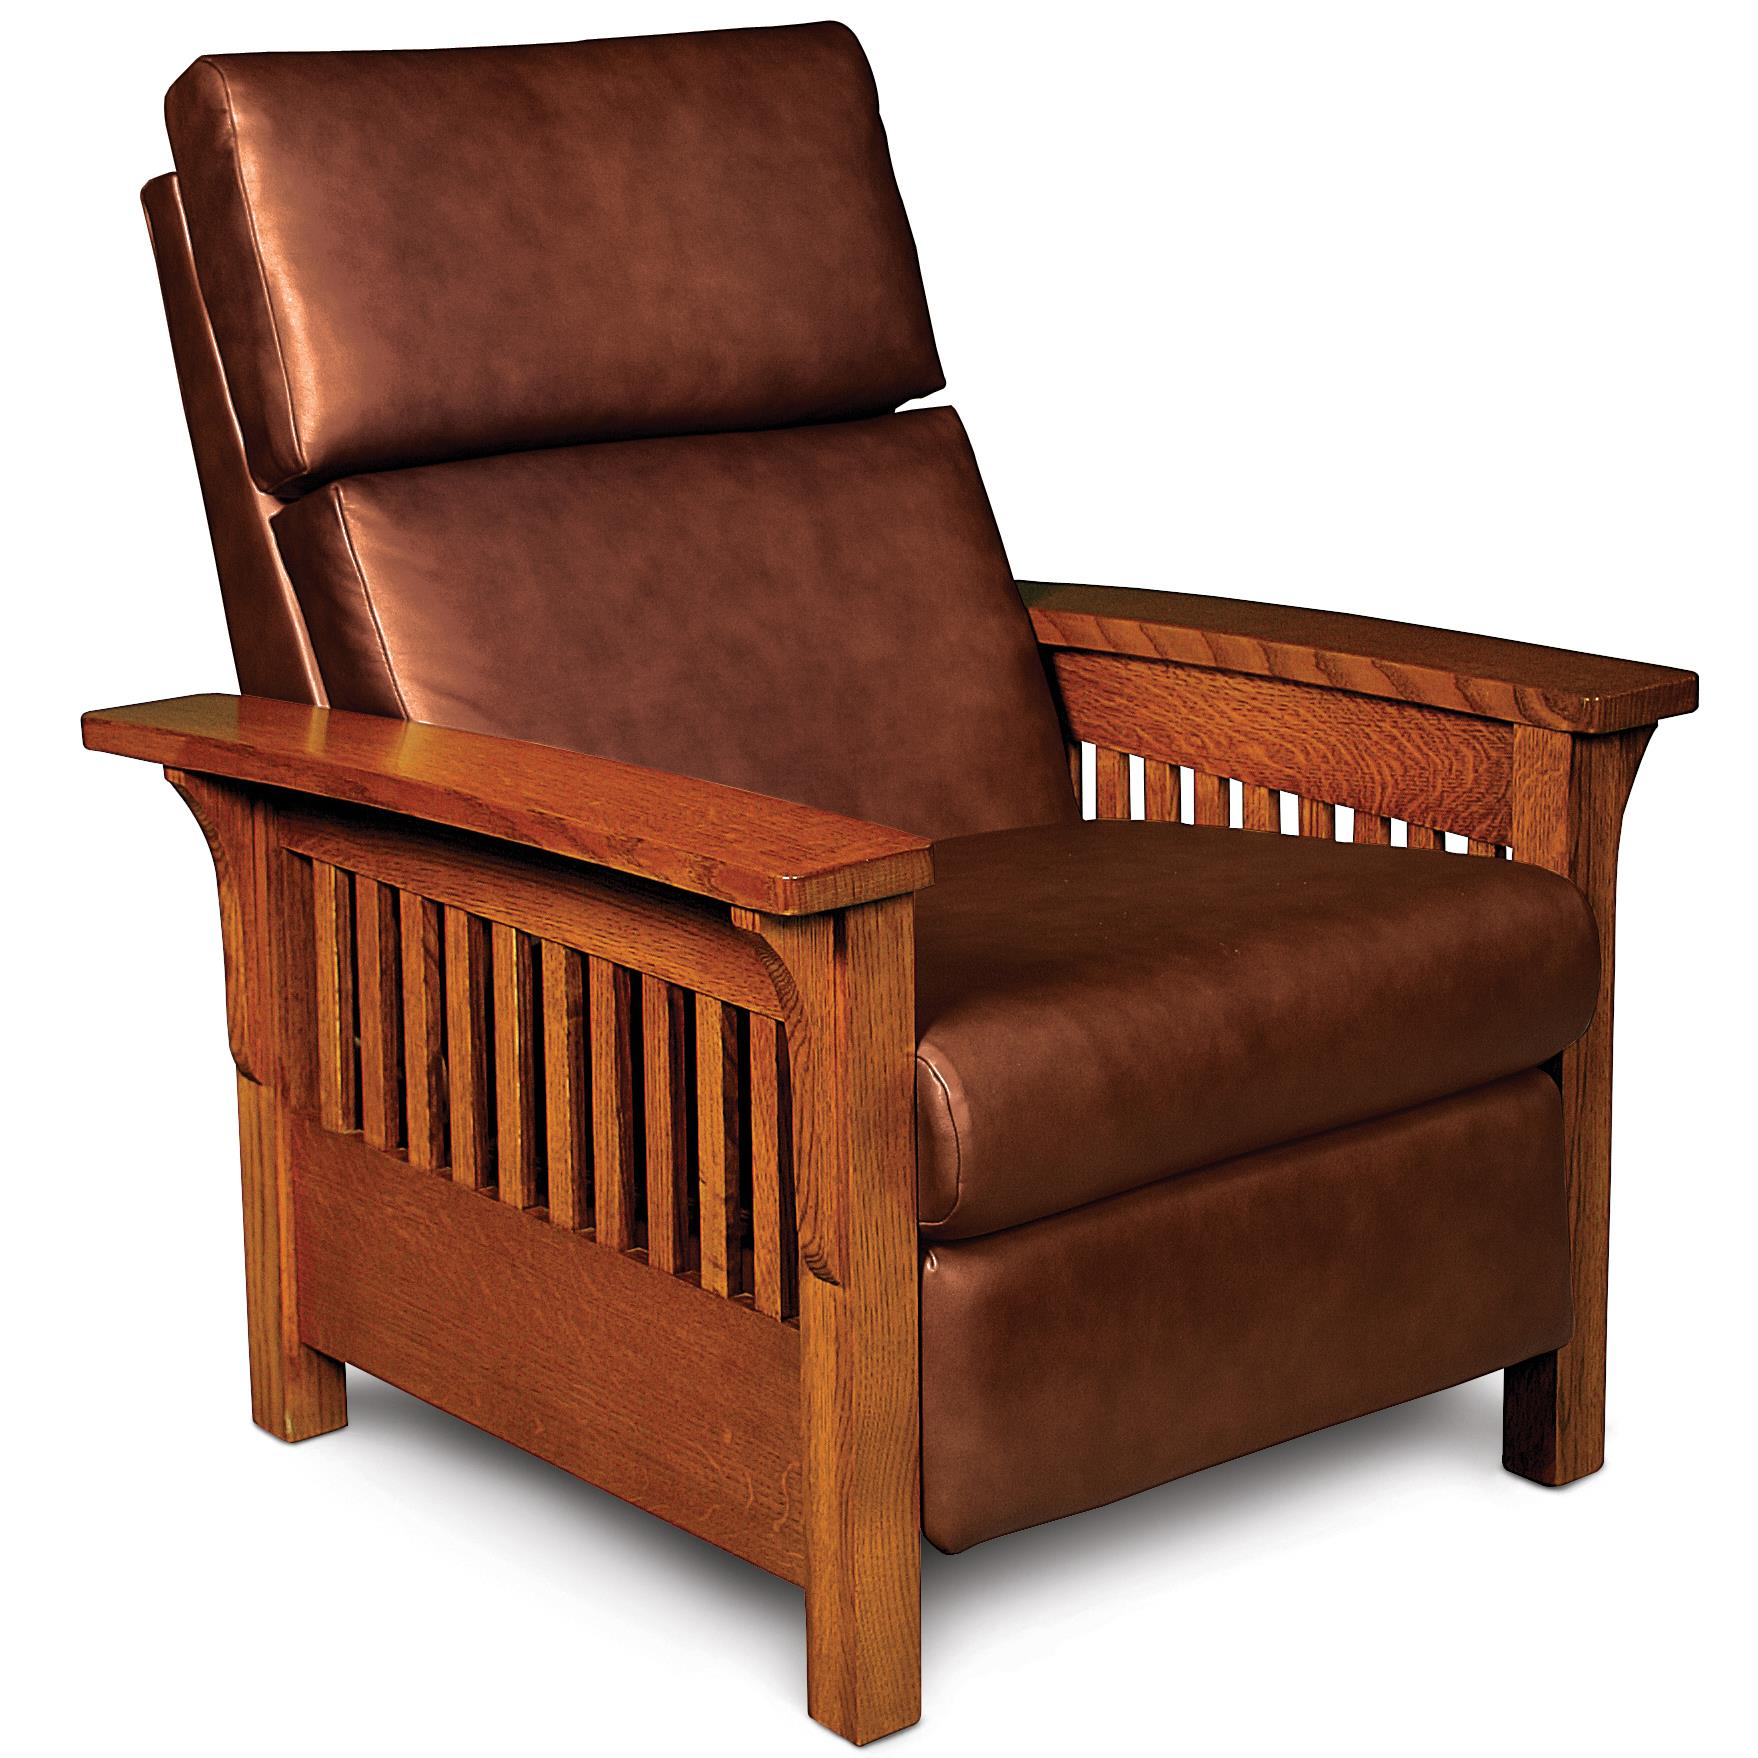 Simply Amish Grand Rapids High Leg Recliner with Wood Arms and